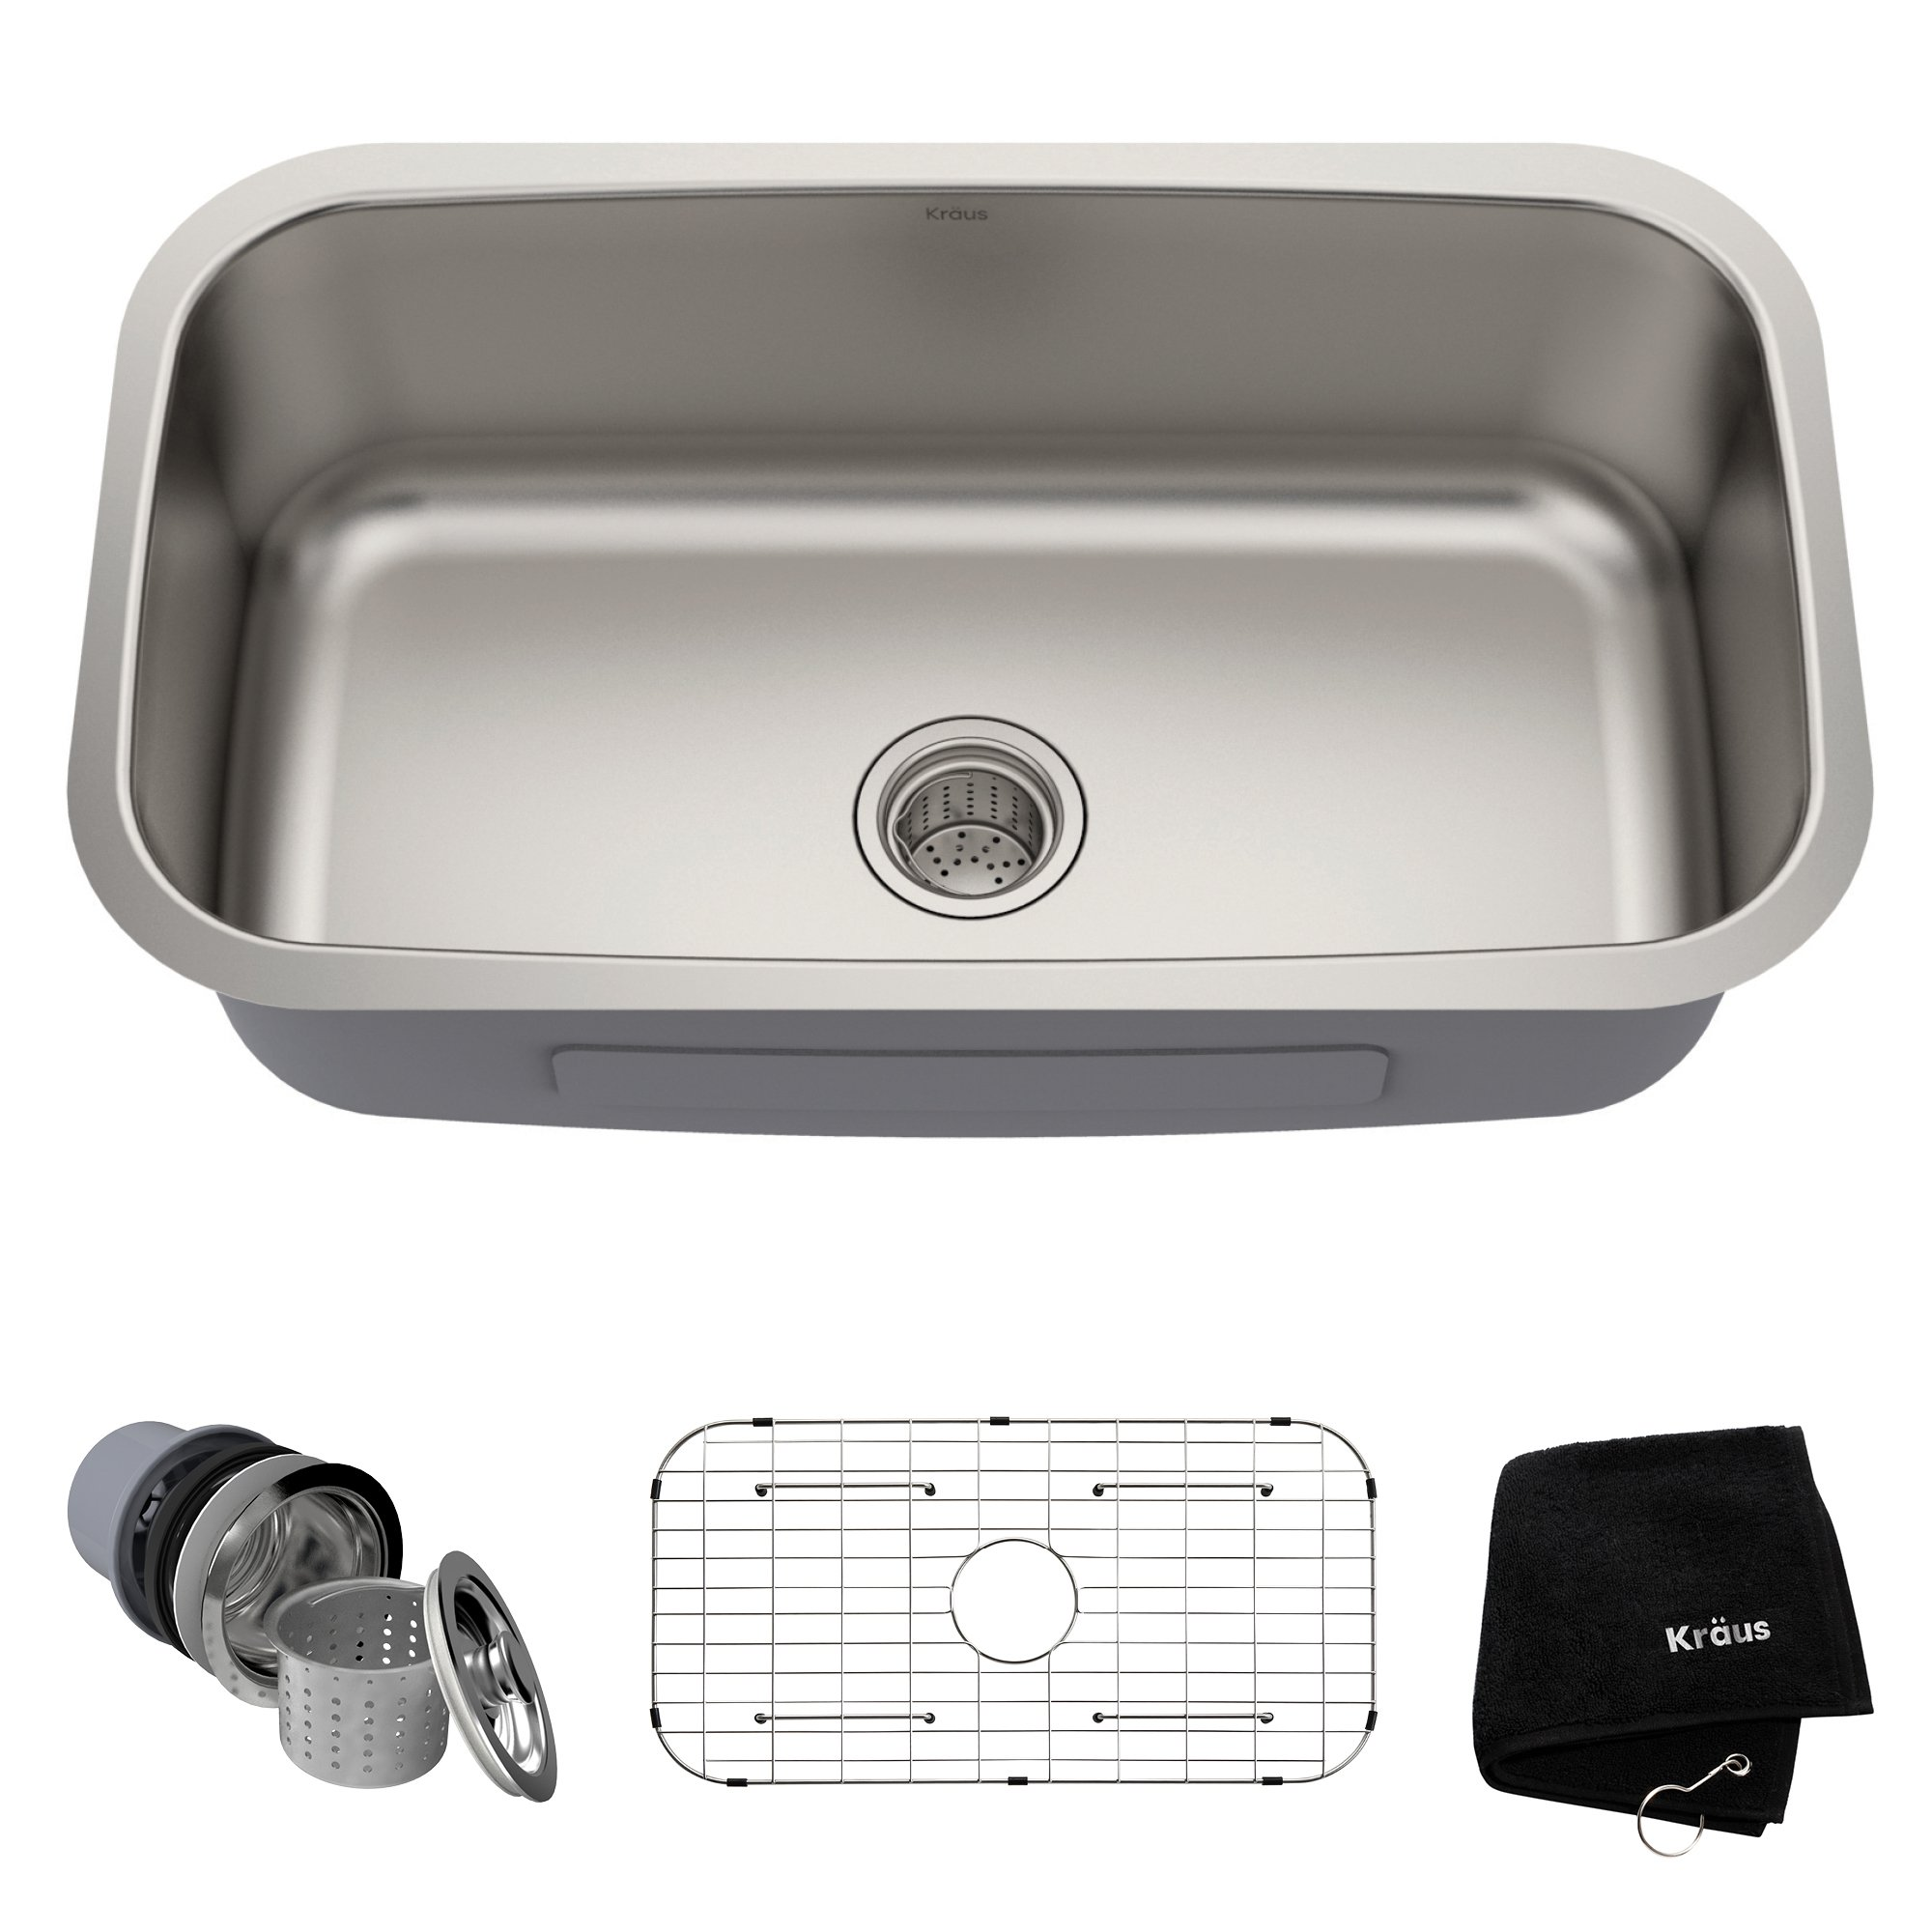 Kraus KBU14 31-1/2 inch Undermount Single Bowl 16-gauge Stainless Steel Kitchen Sink by Kraus